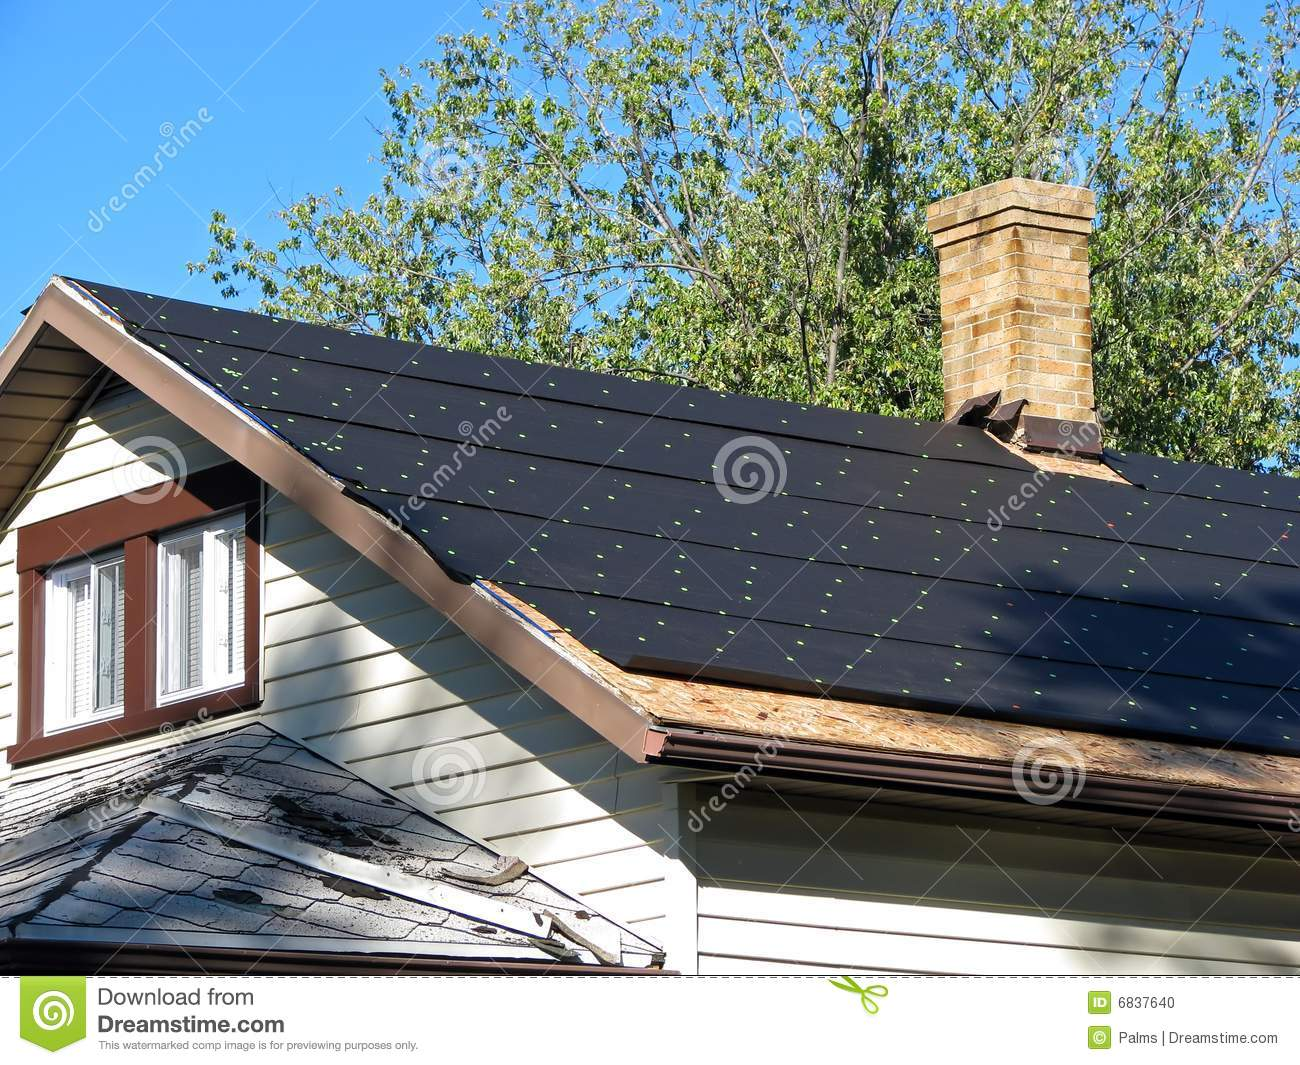 Tar Paper On A Roof